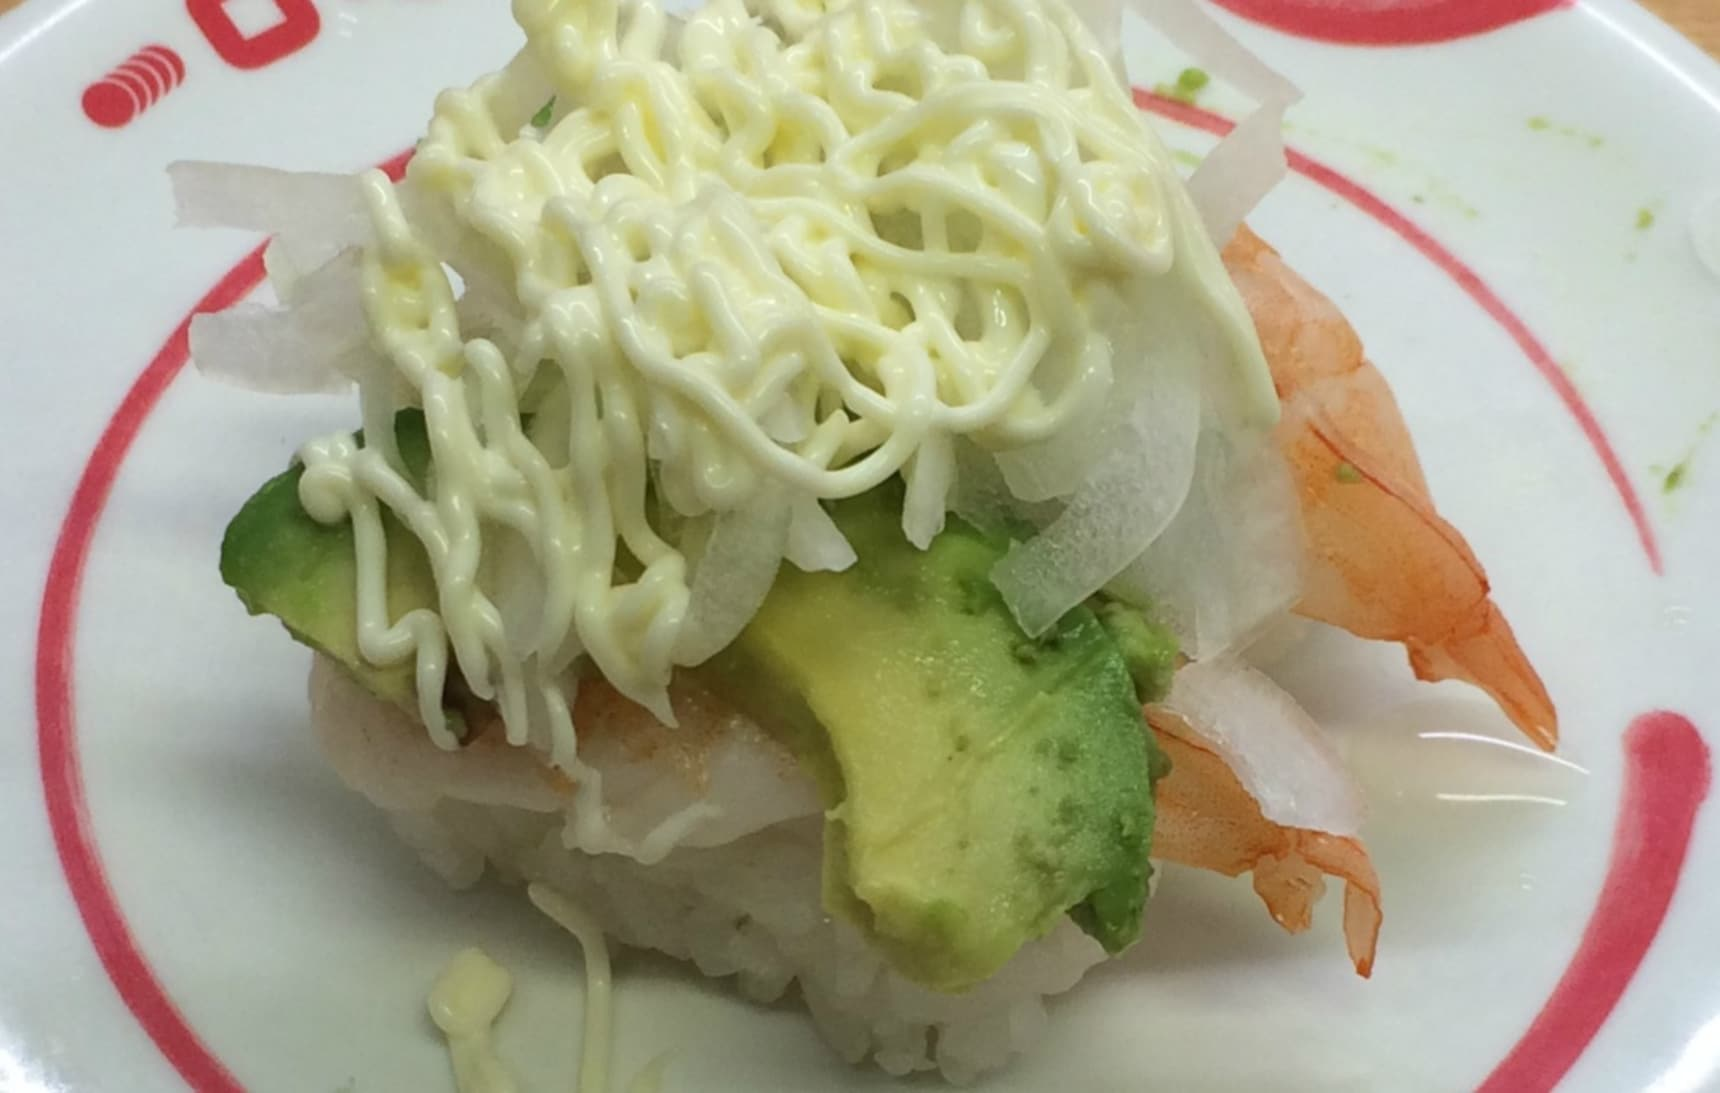 Image result for images of western style sushi